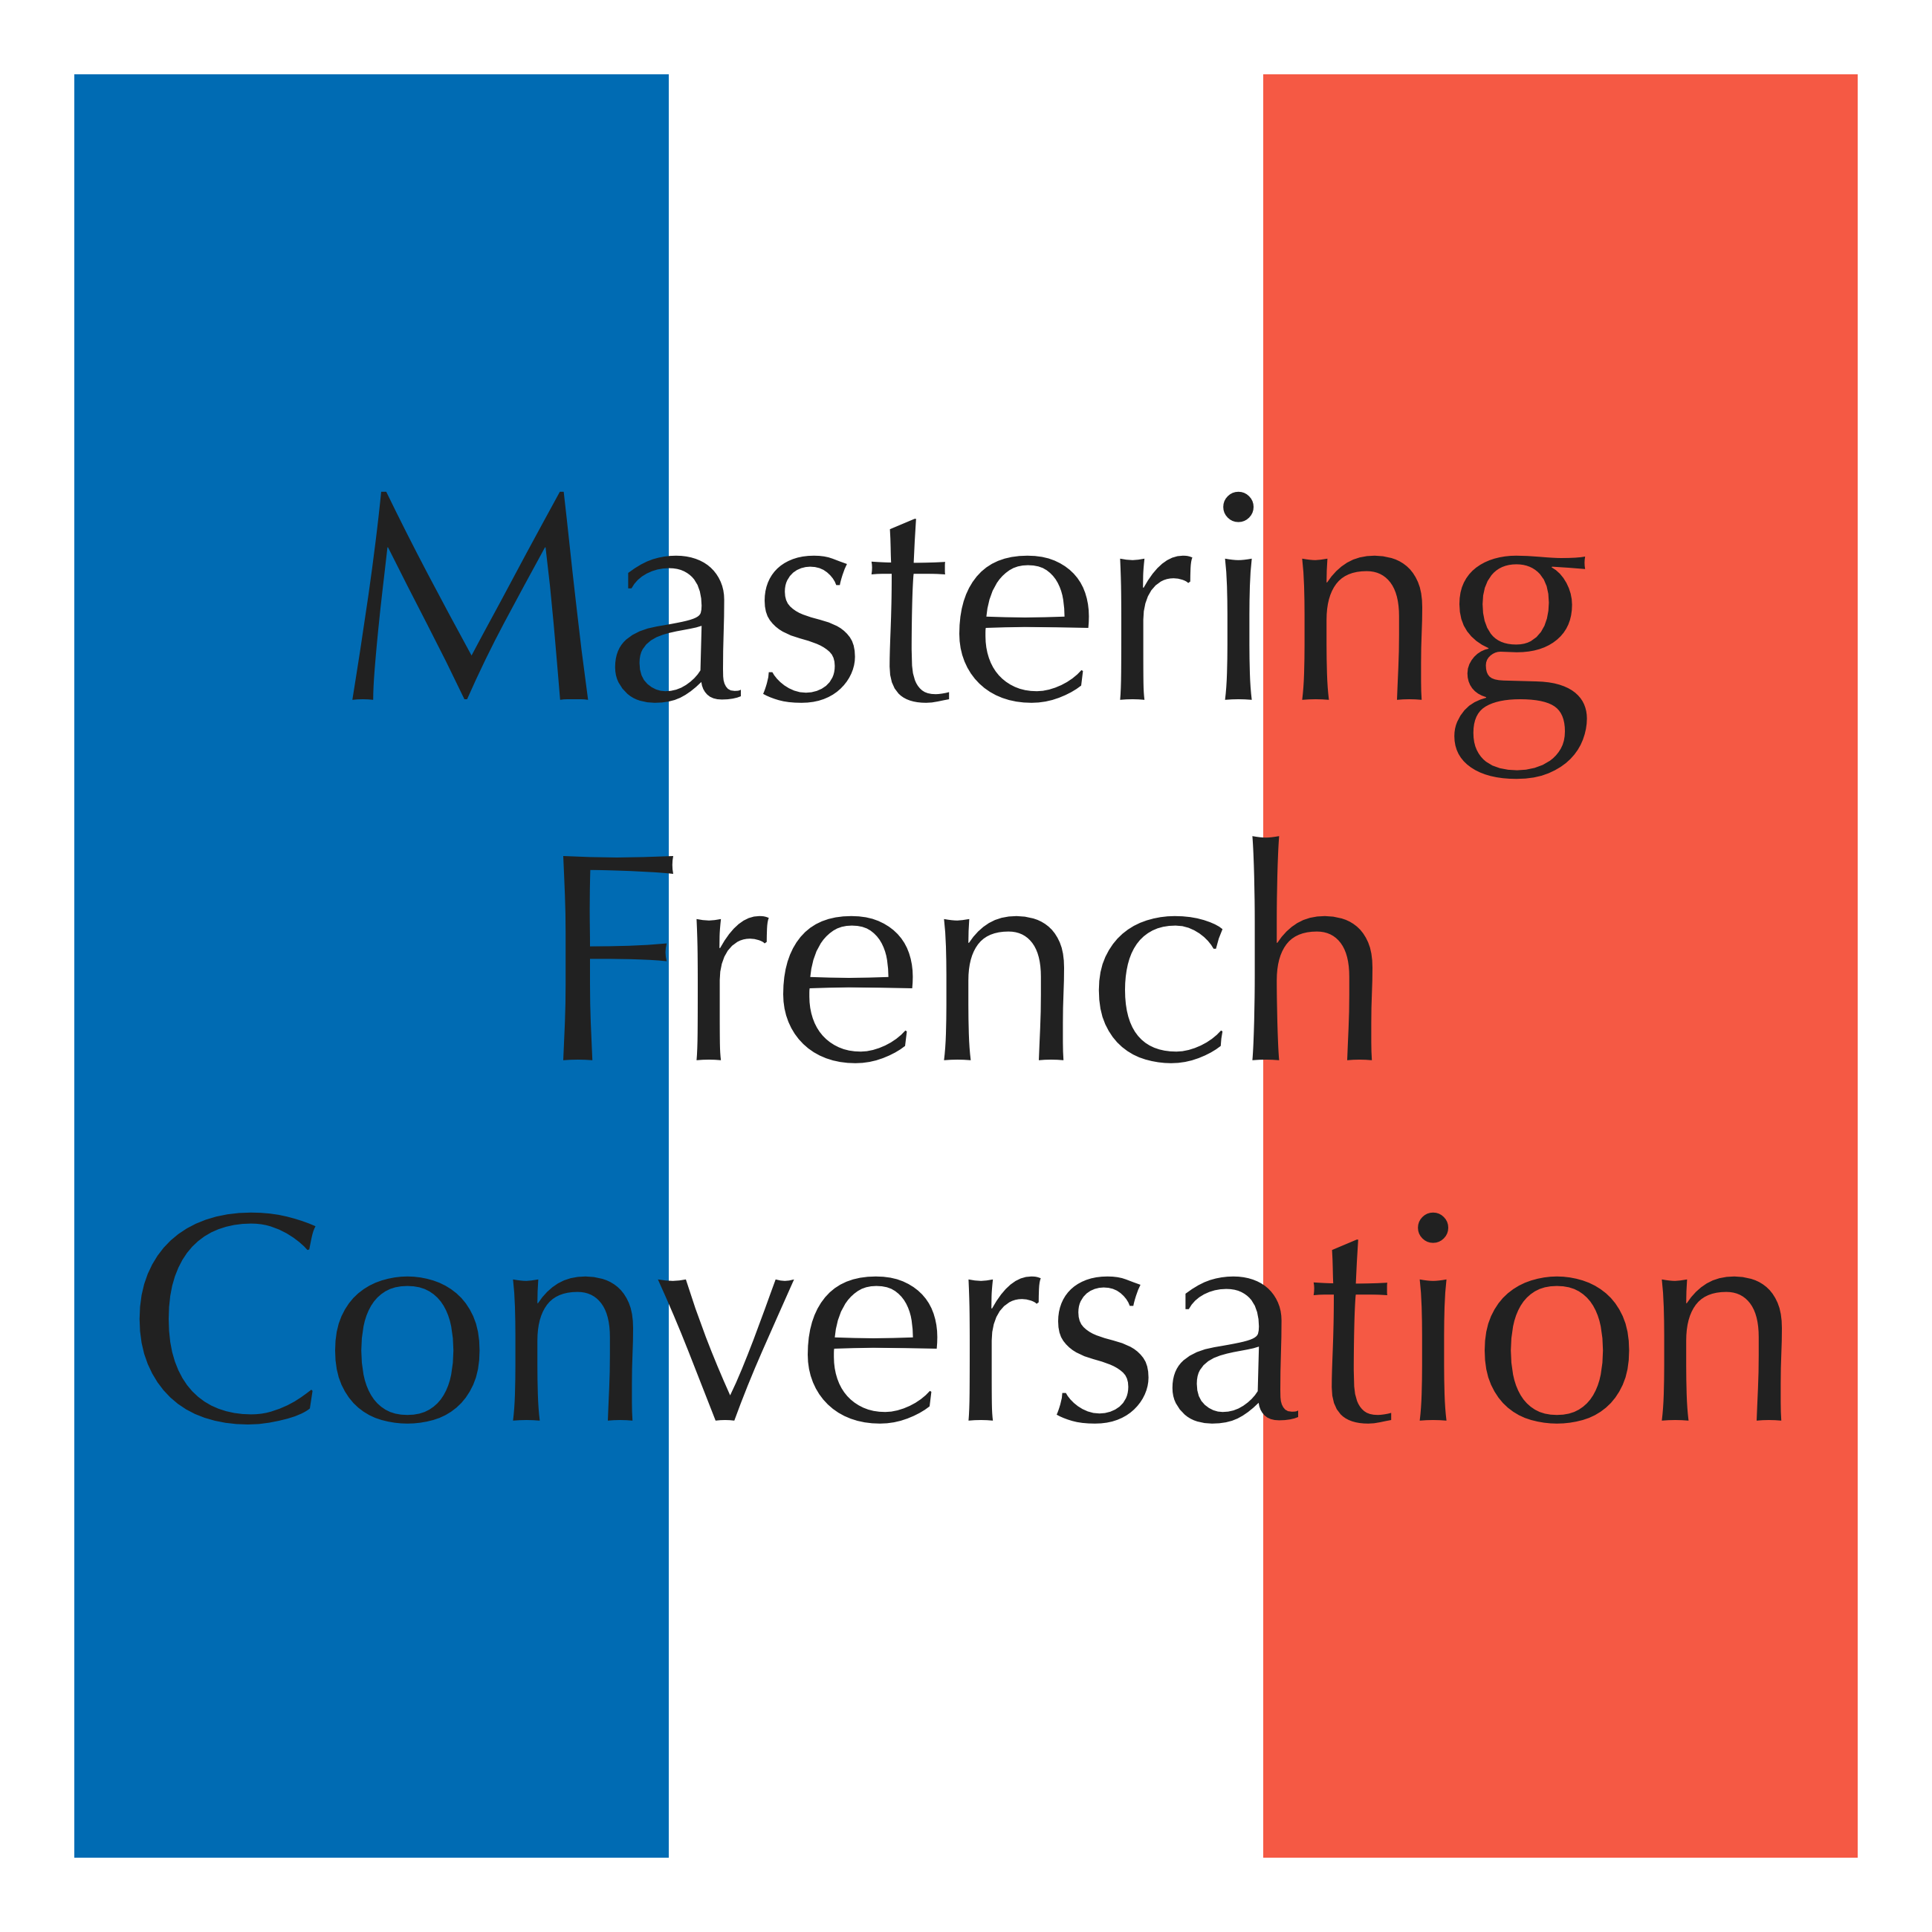 Mastering French Conversation Unit 3 (excerpt) by Dr. Brians Languages